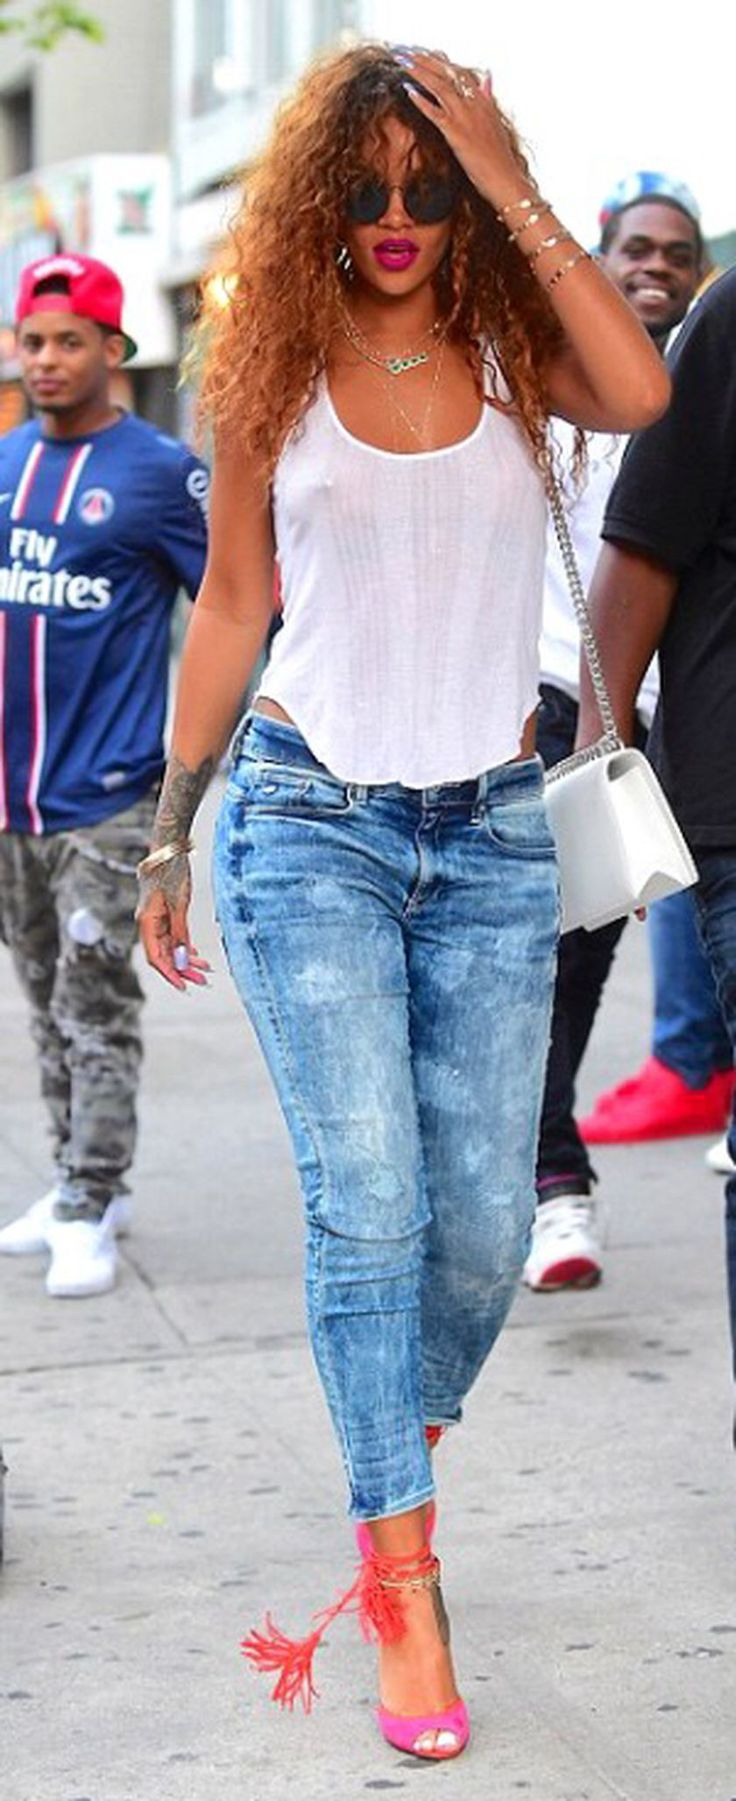 Gallery of Rihanna Denim Style Outfit that You Must See https://fasbest.com/gallery-rihanna-denim-style-outfit-must-see/